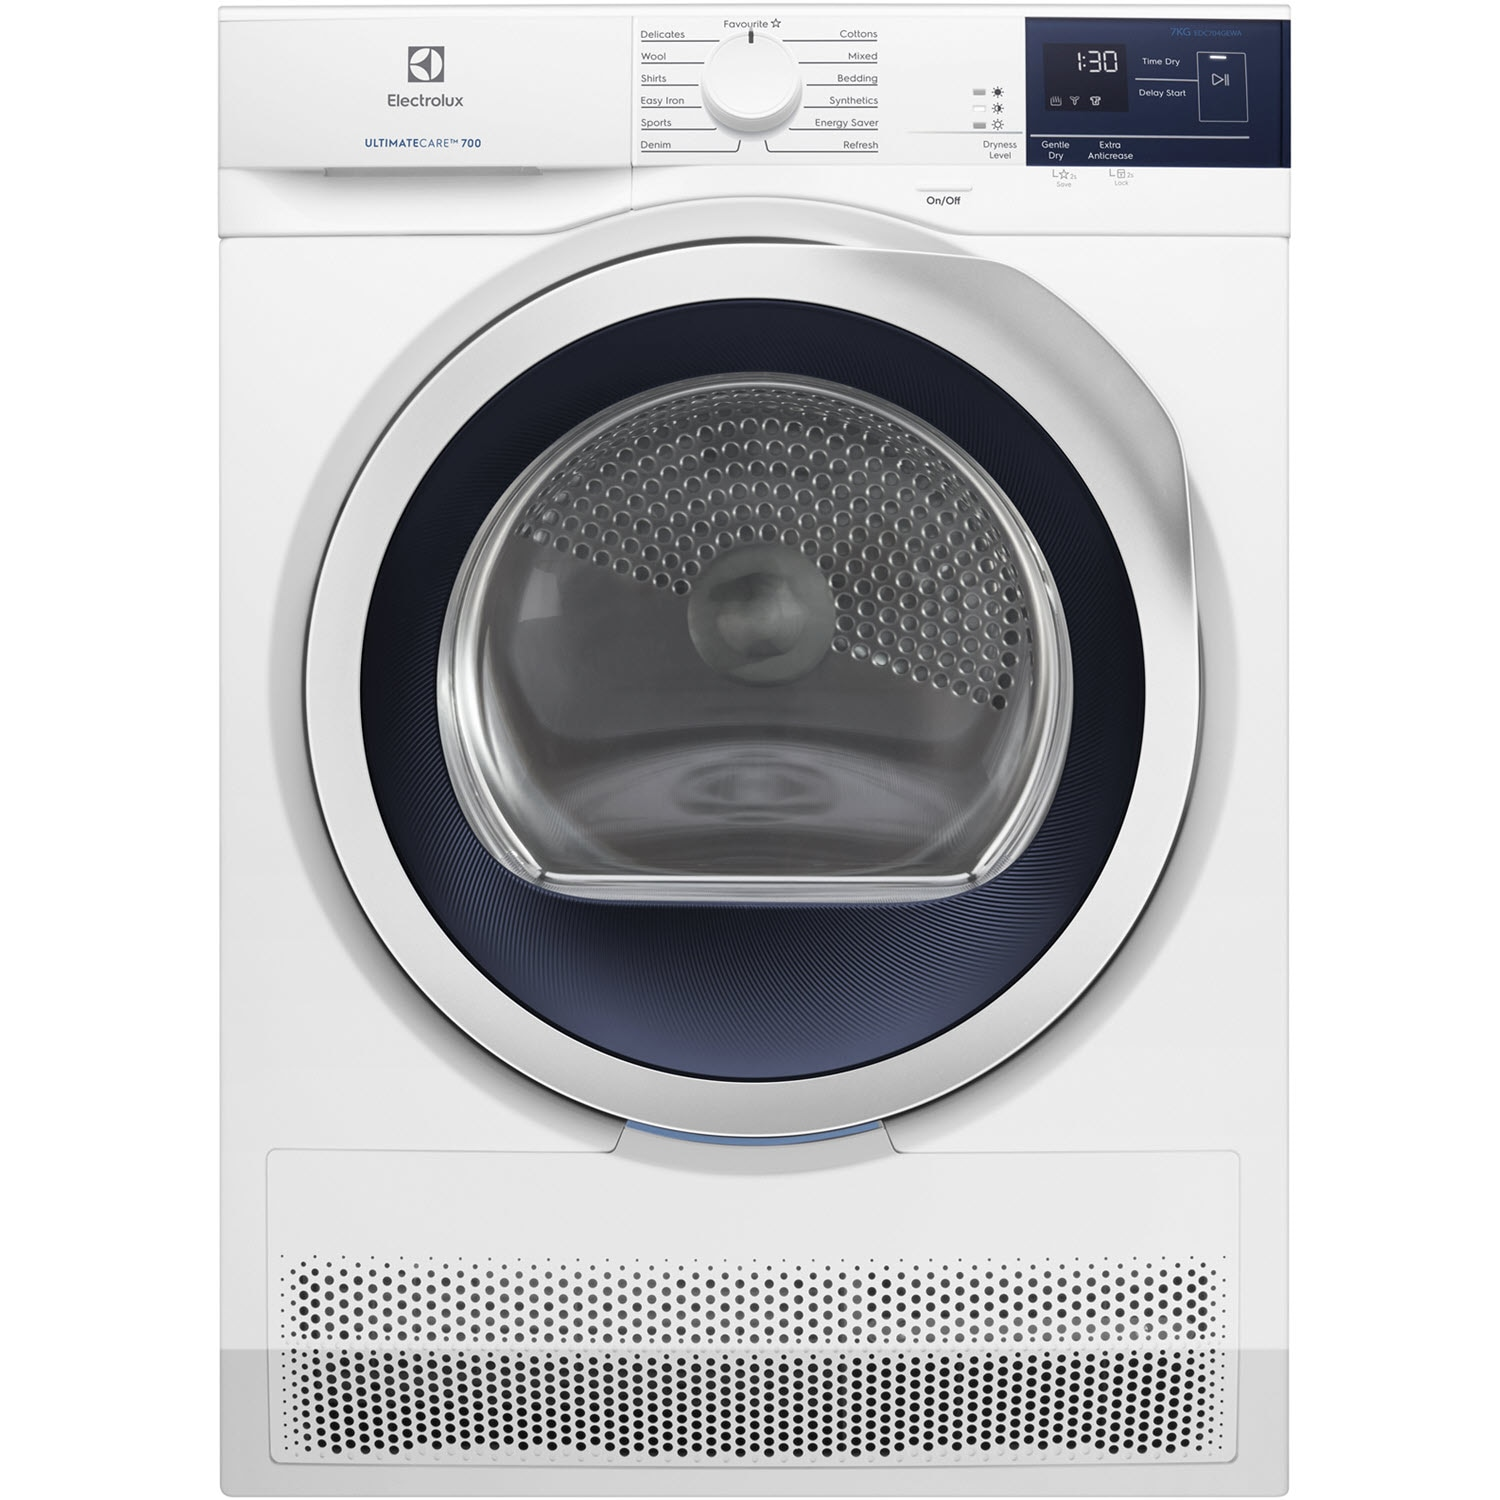 7kg UltimateCare™ 700 Condenser Dryer